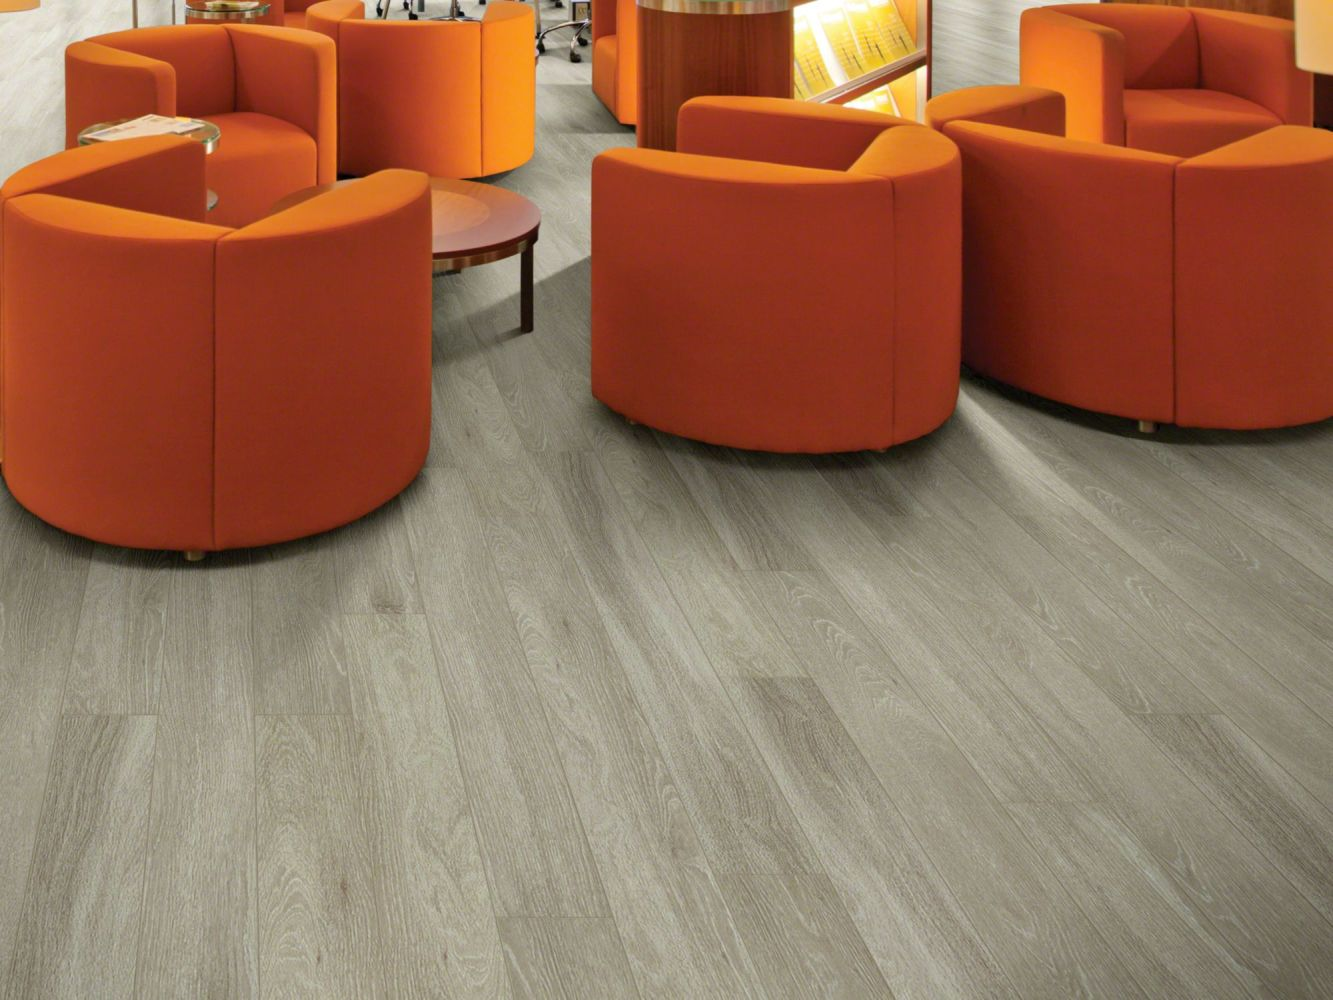 Shaw Floors Vinyl Residential Uptown Now Wpc+ Music Row 00775_0999V